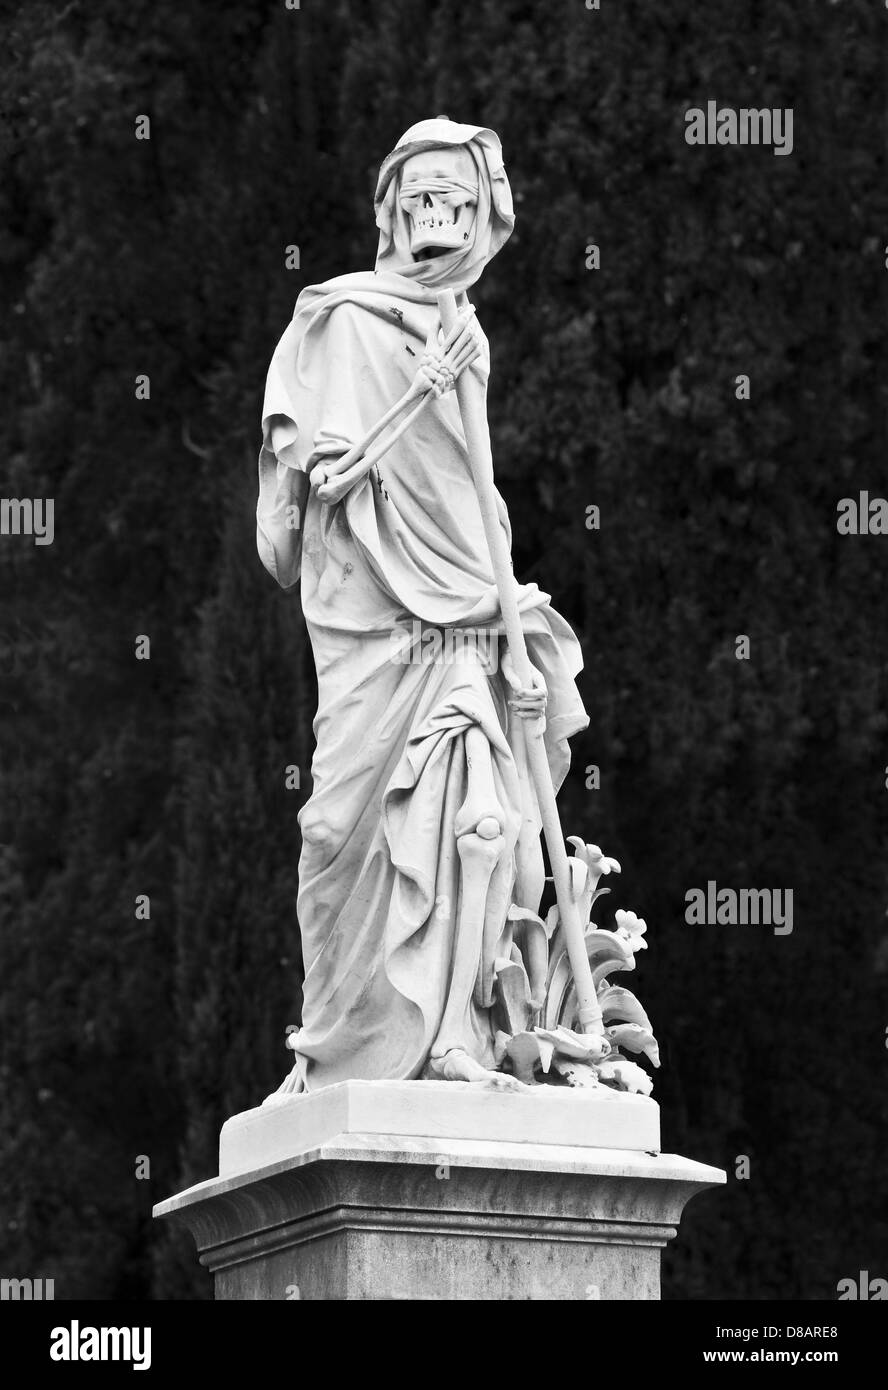 The English Cemetery, Florence, Italy. A sculpture of blindfolded Death, the grim Reaper, with his scythe (b/w, - Stock Image